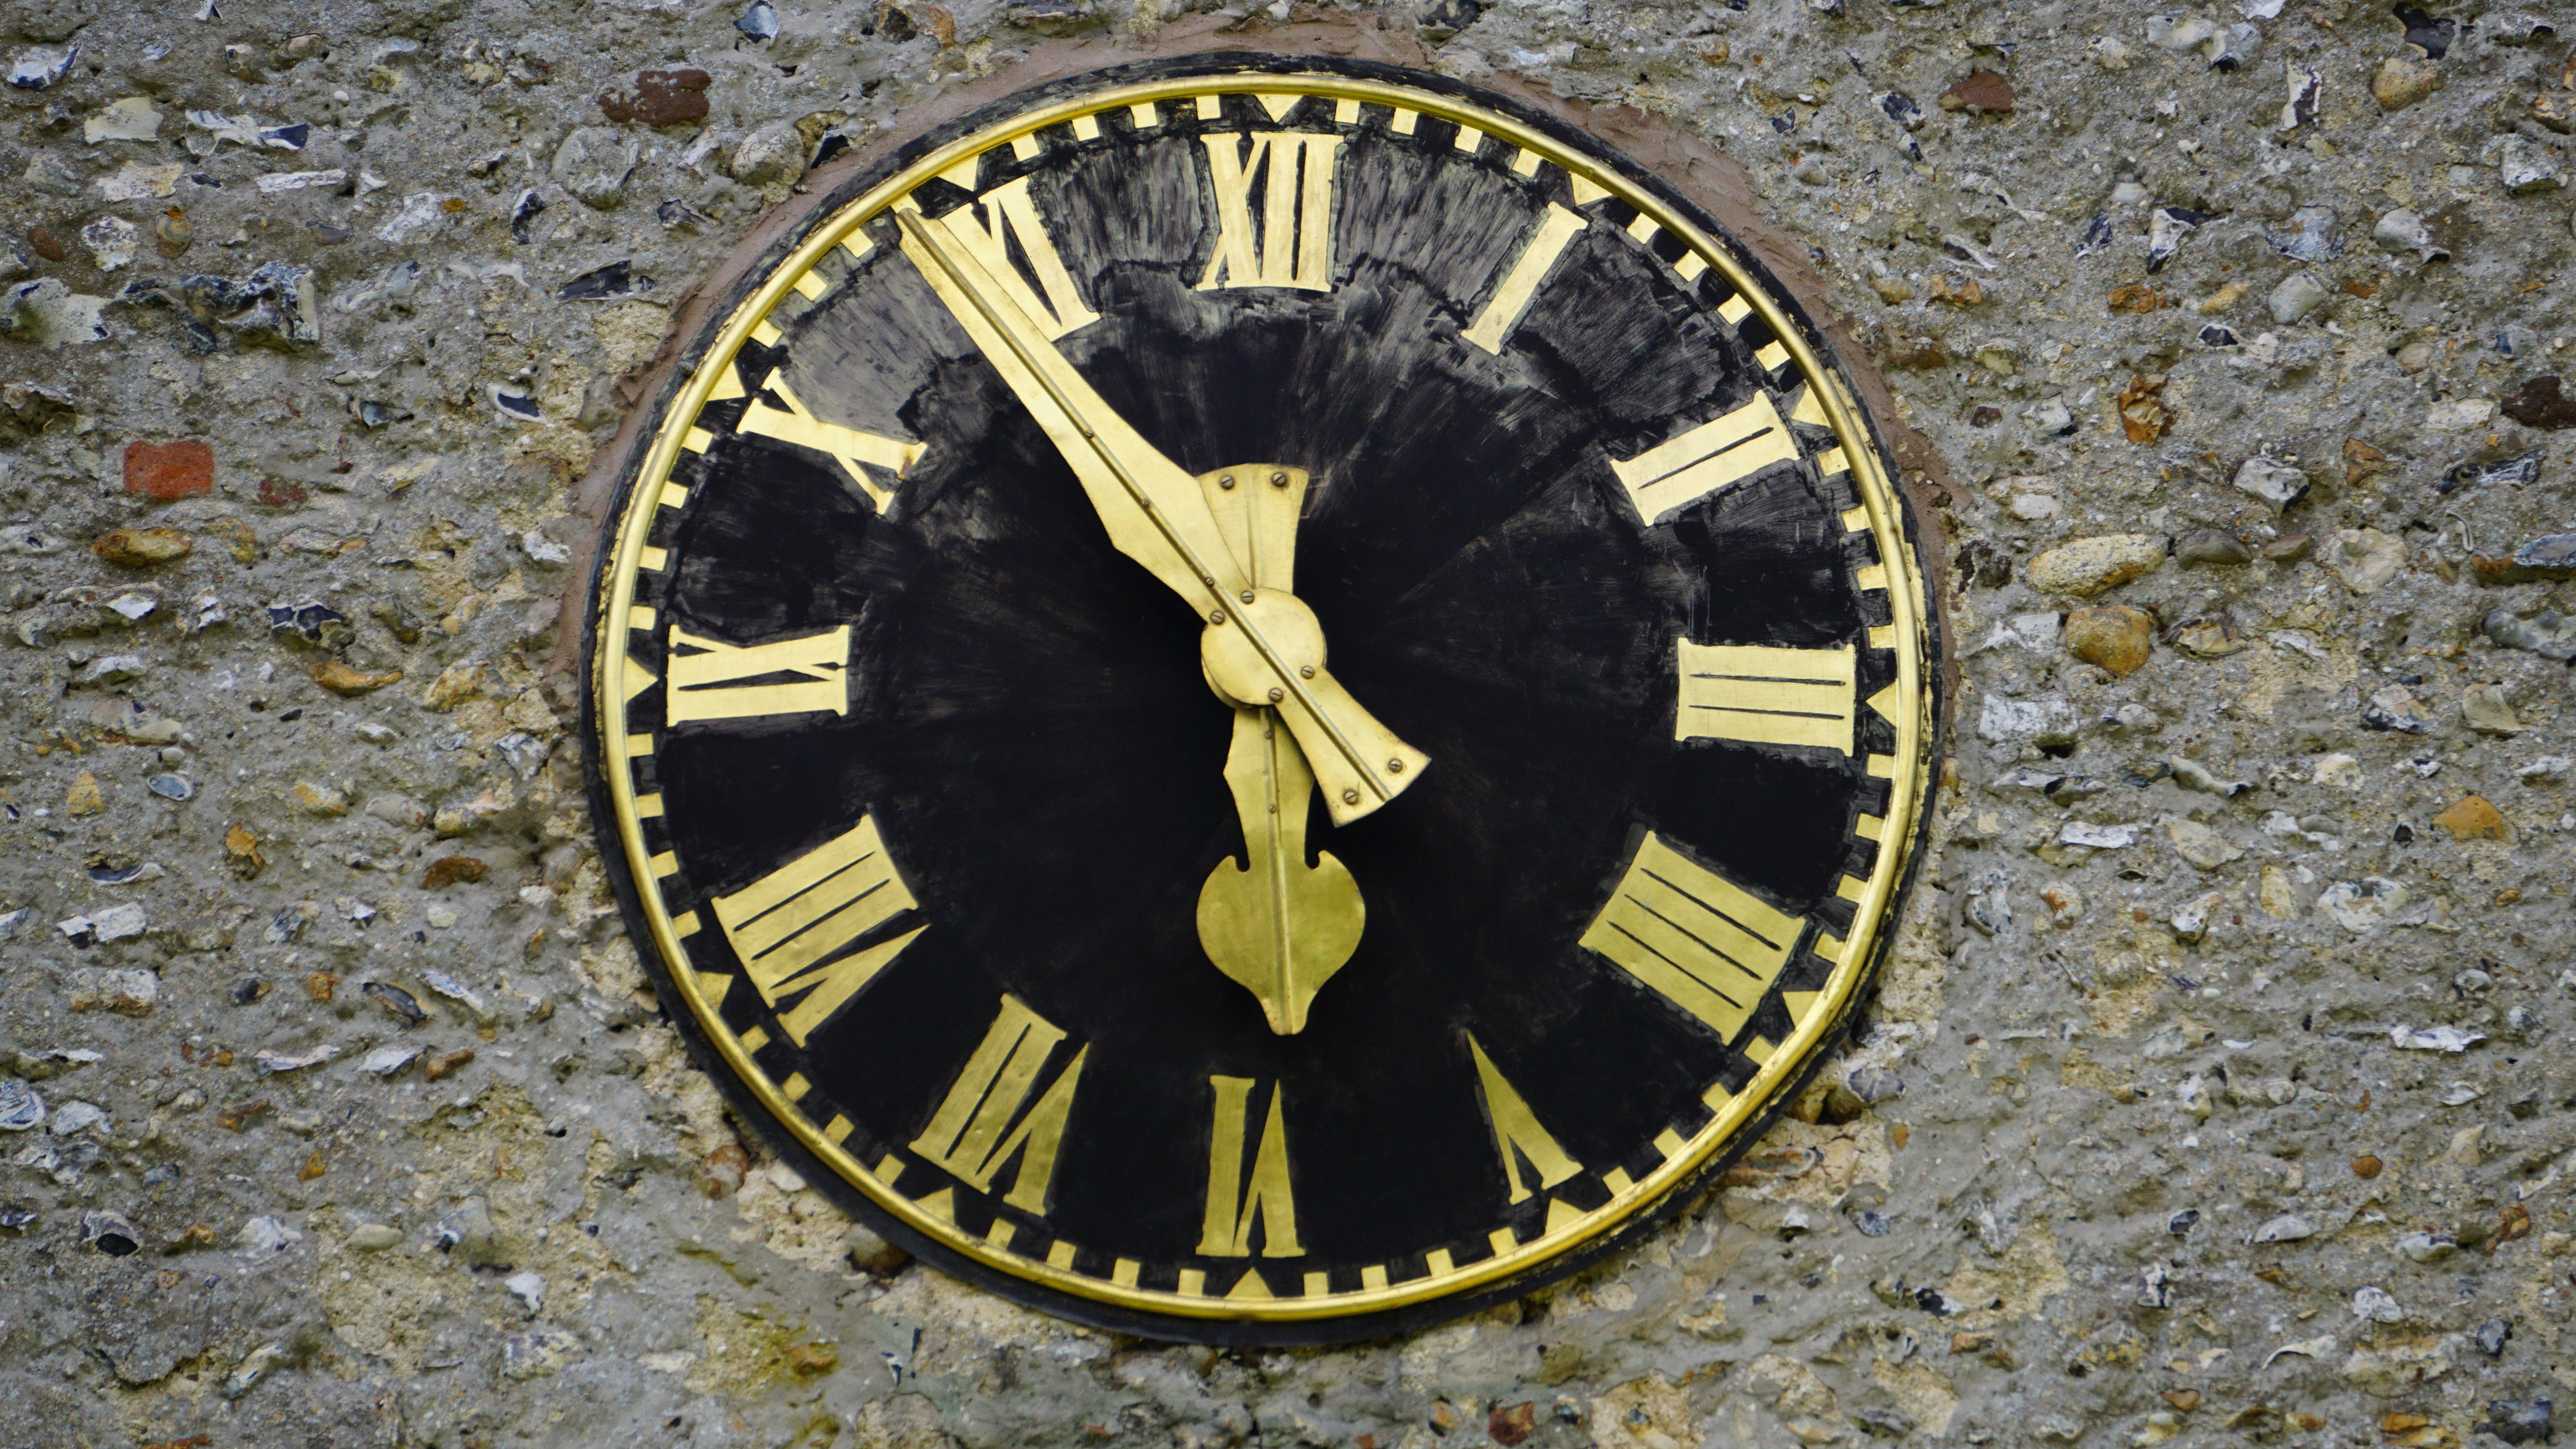 Round Black and Yellow Analog Clock